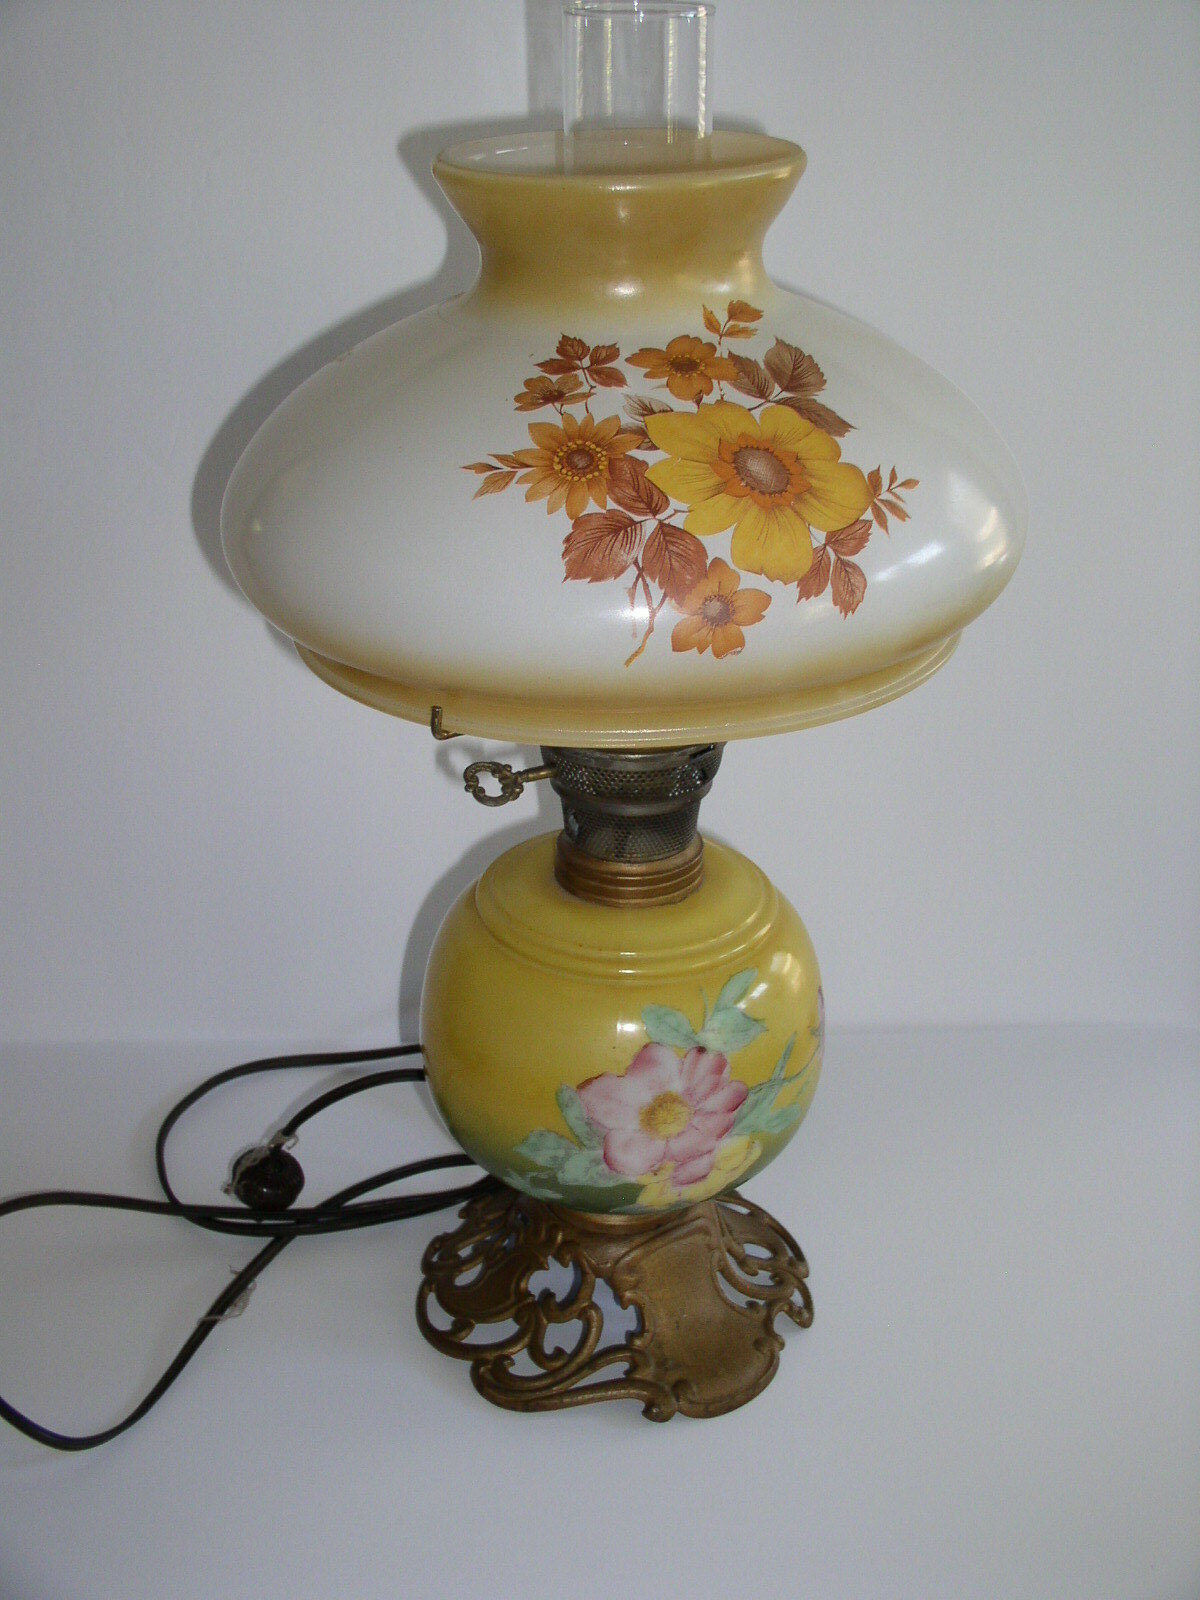 Vintage electric hurricane table lamp 10000 picclick vintage electric hurricane table lamp 1 of 8only 1 available aloadofball Images